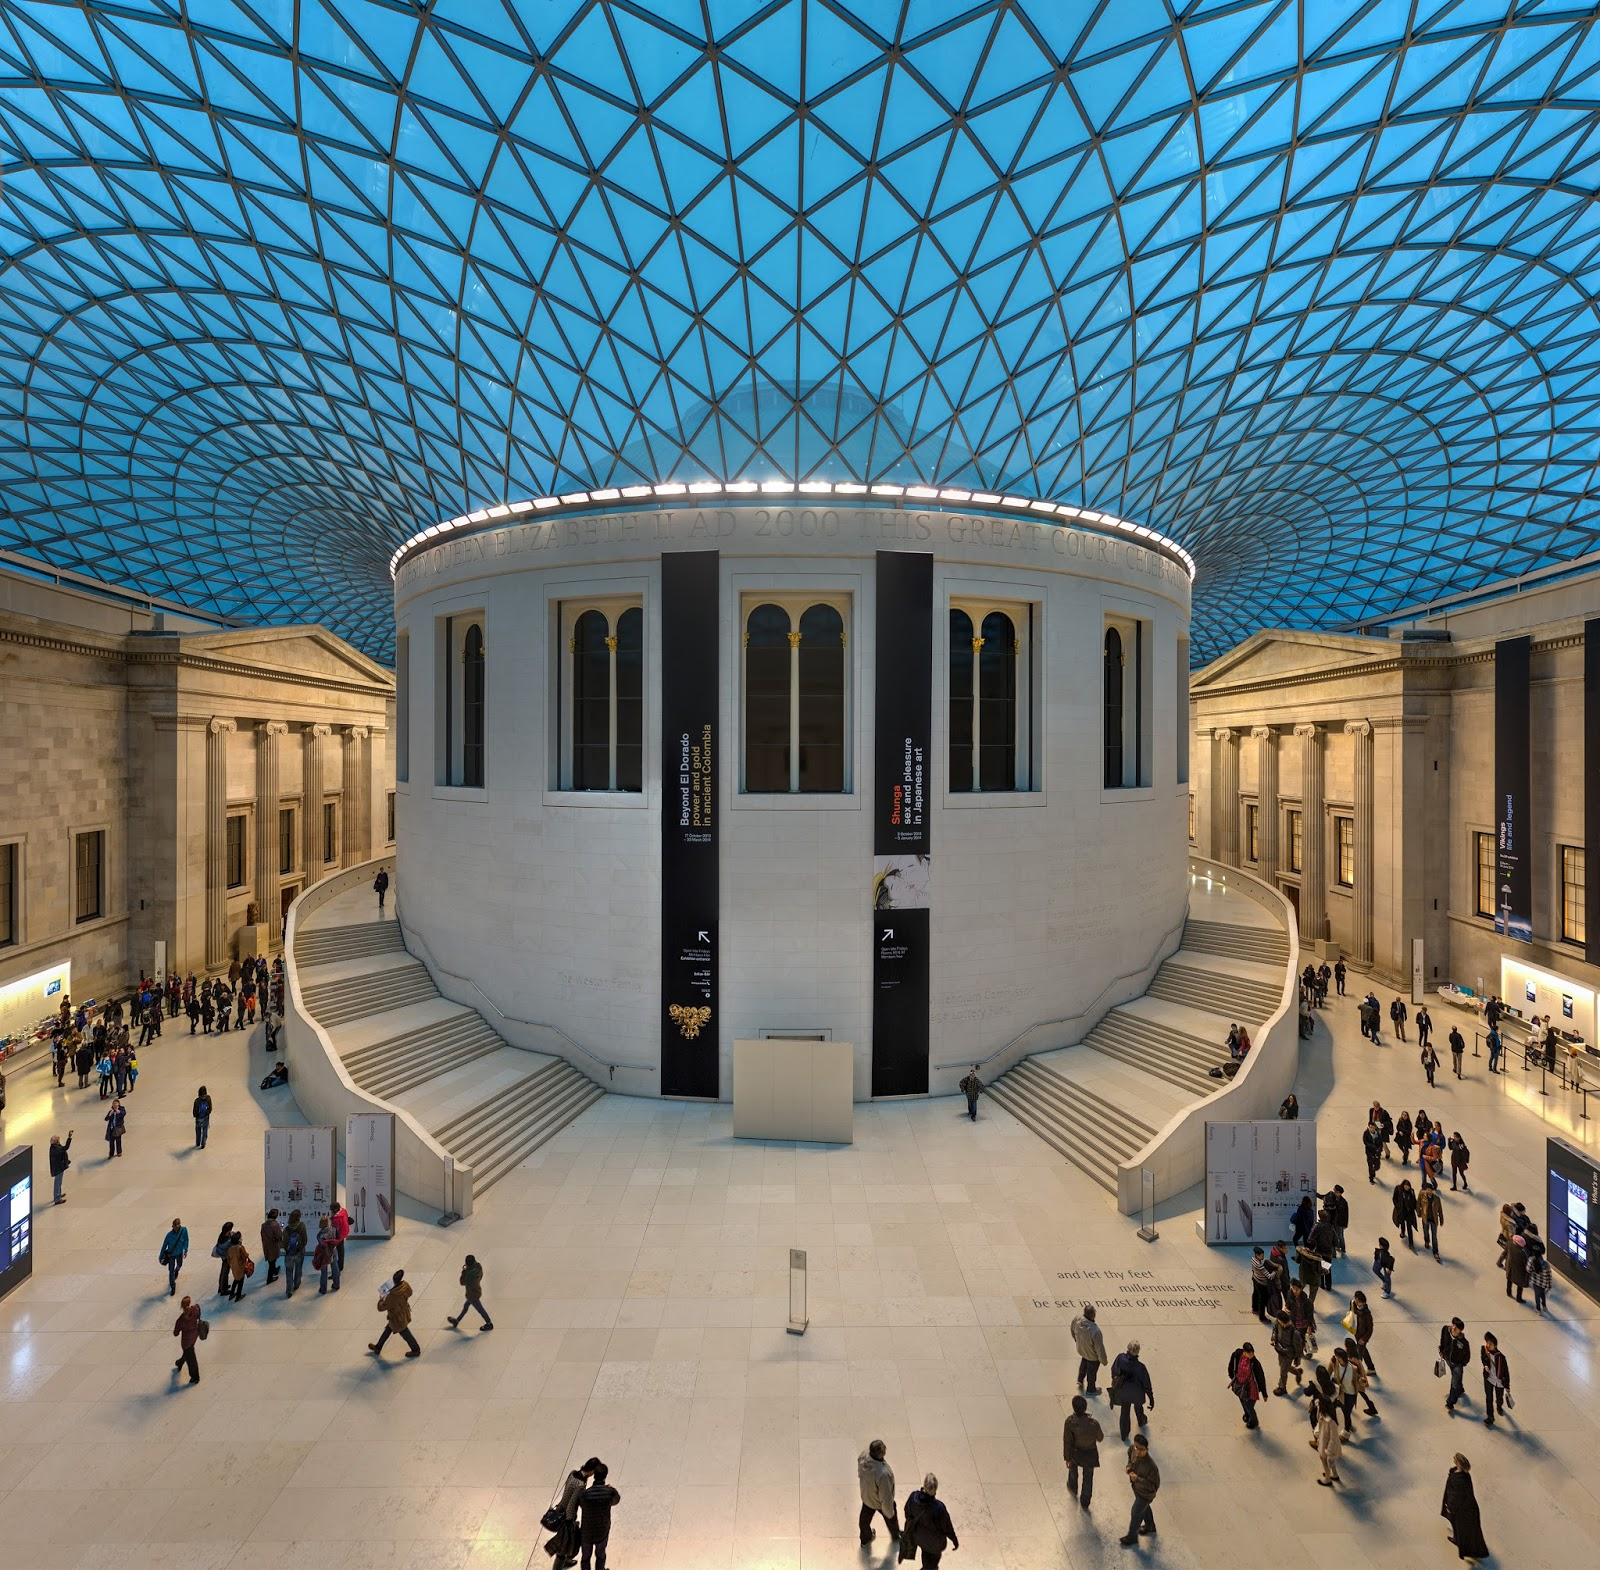 These Are The 25 Best Museums In The World - The British Museum